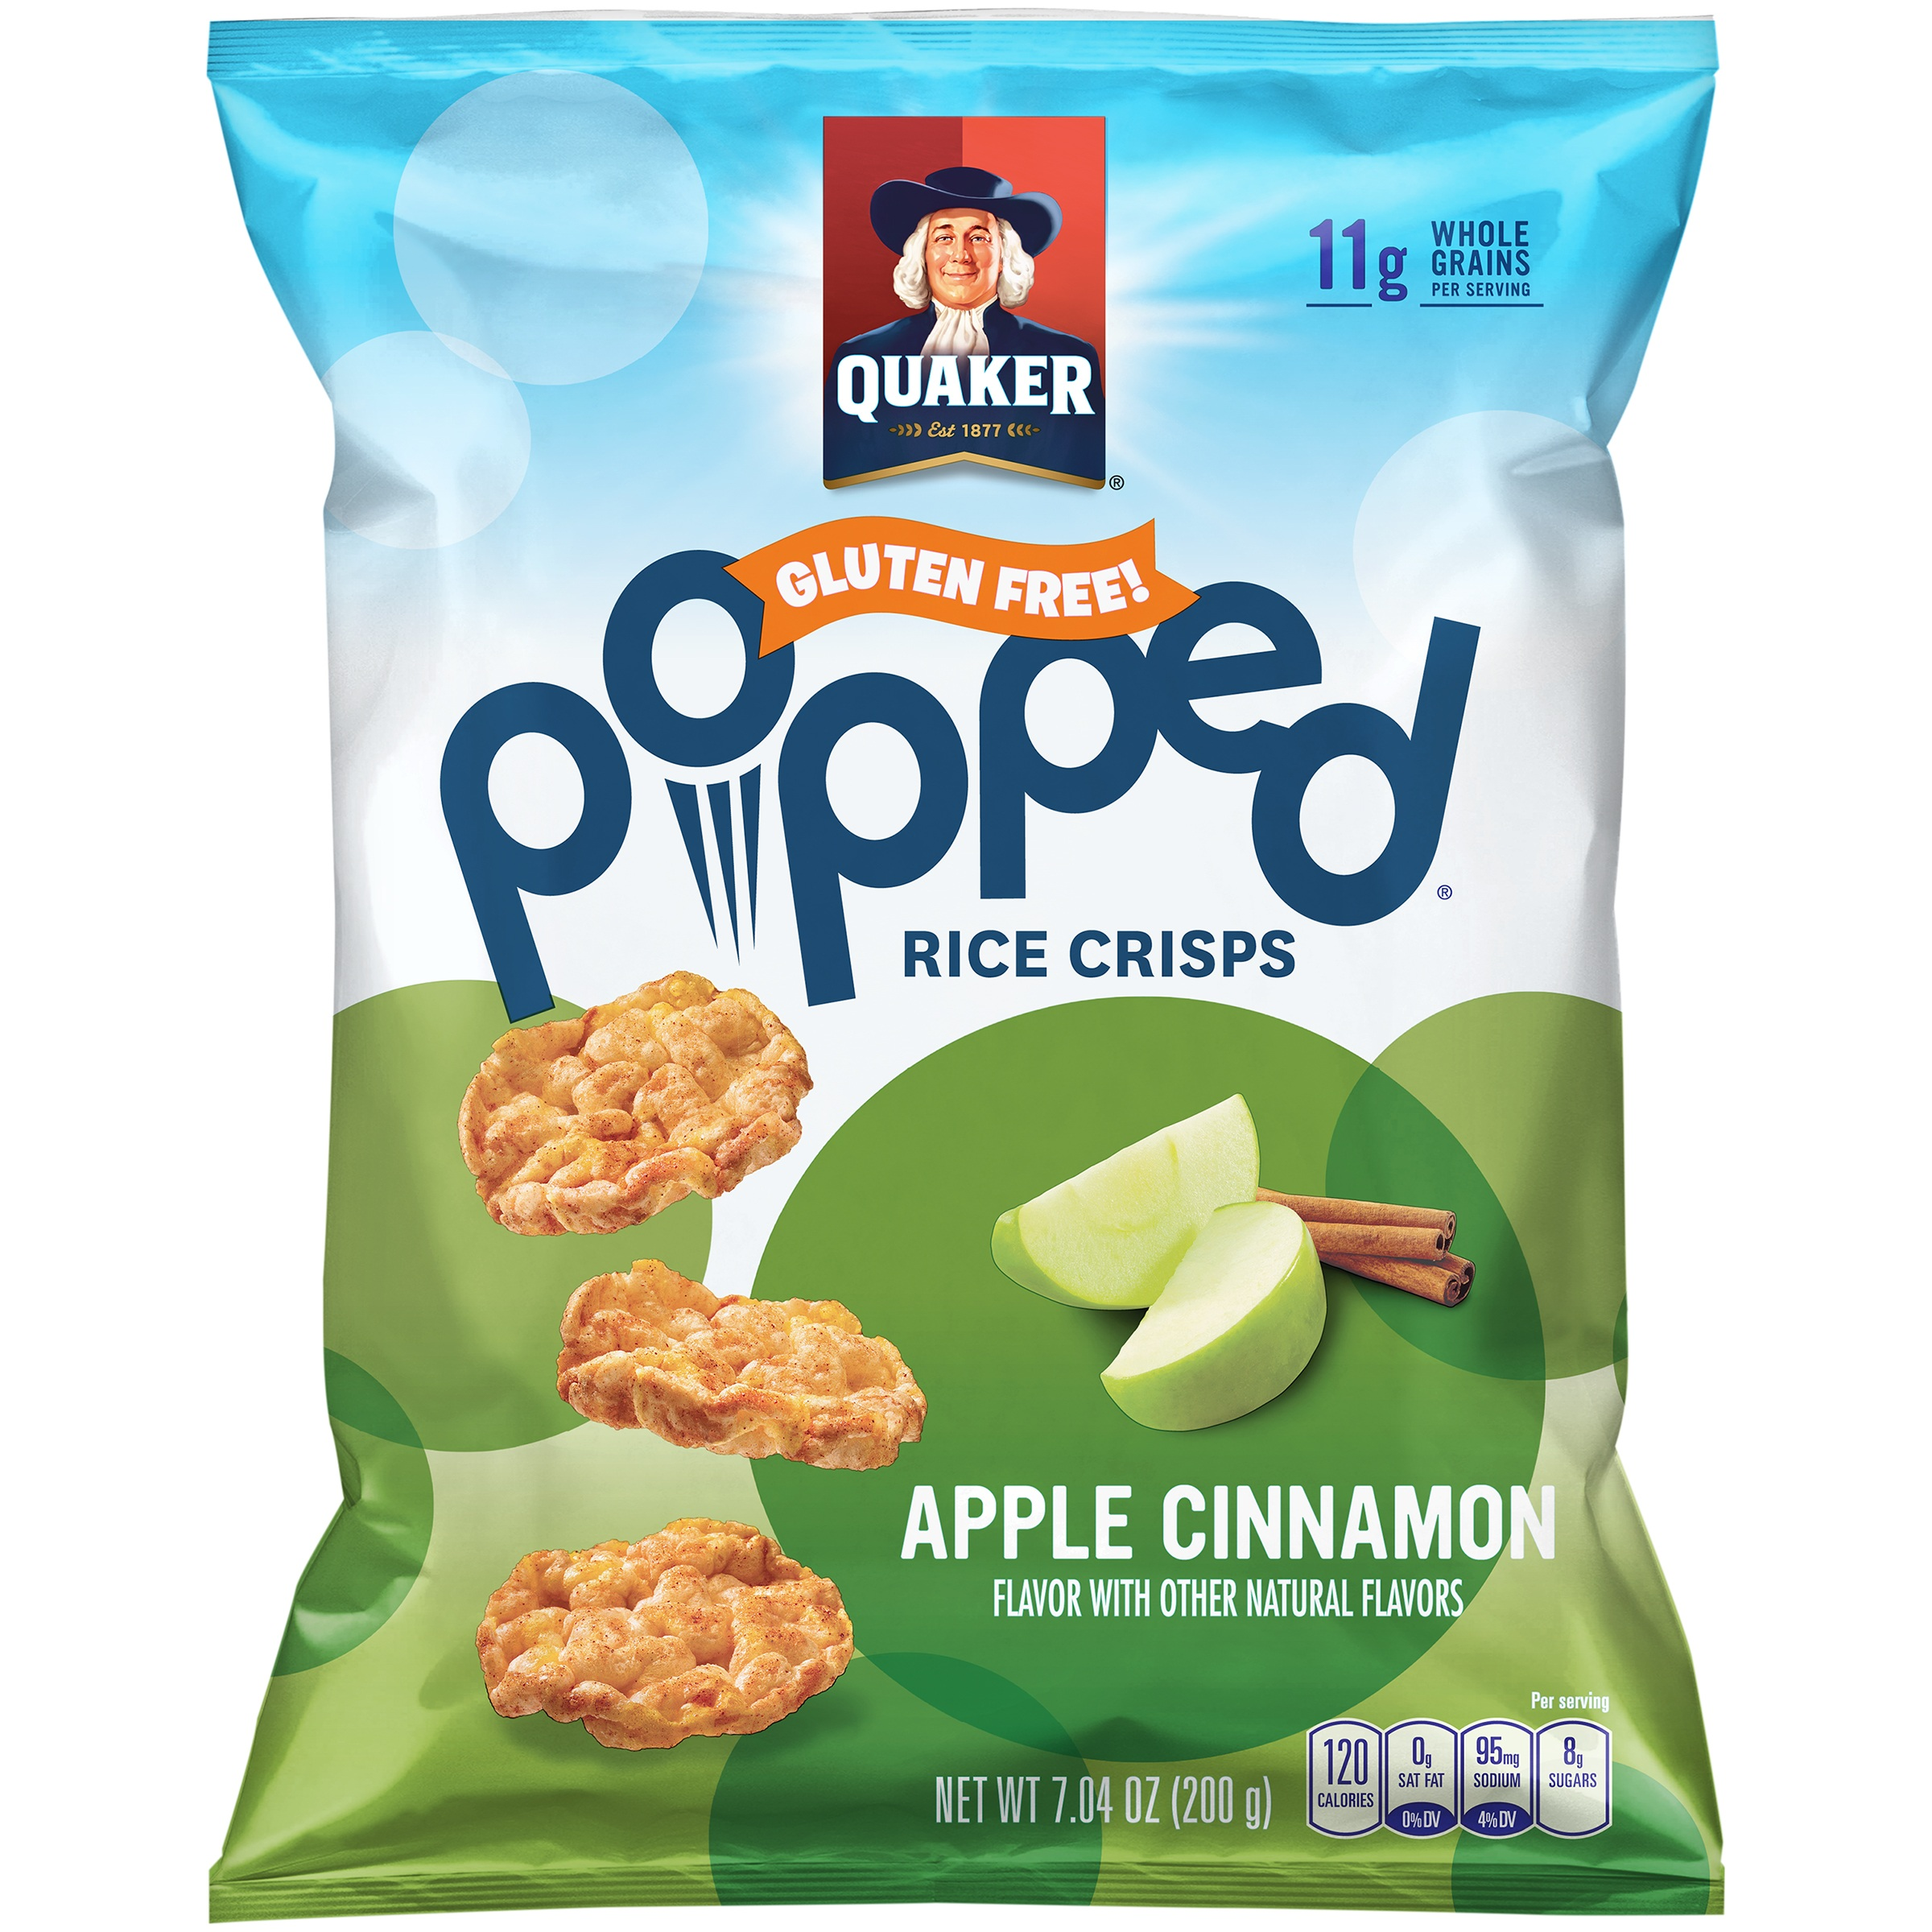 Quaker Popped Apple Cinnamon Rice Crisps 7.04 oz. Bag by The Quaker Oats Company.